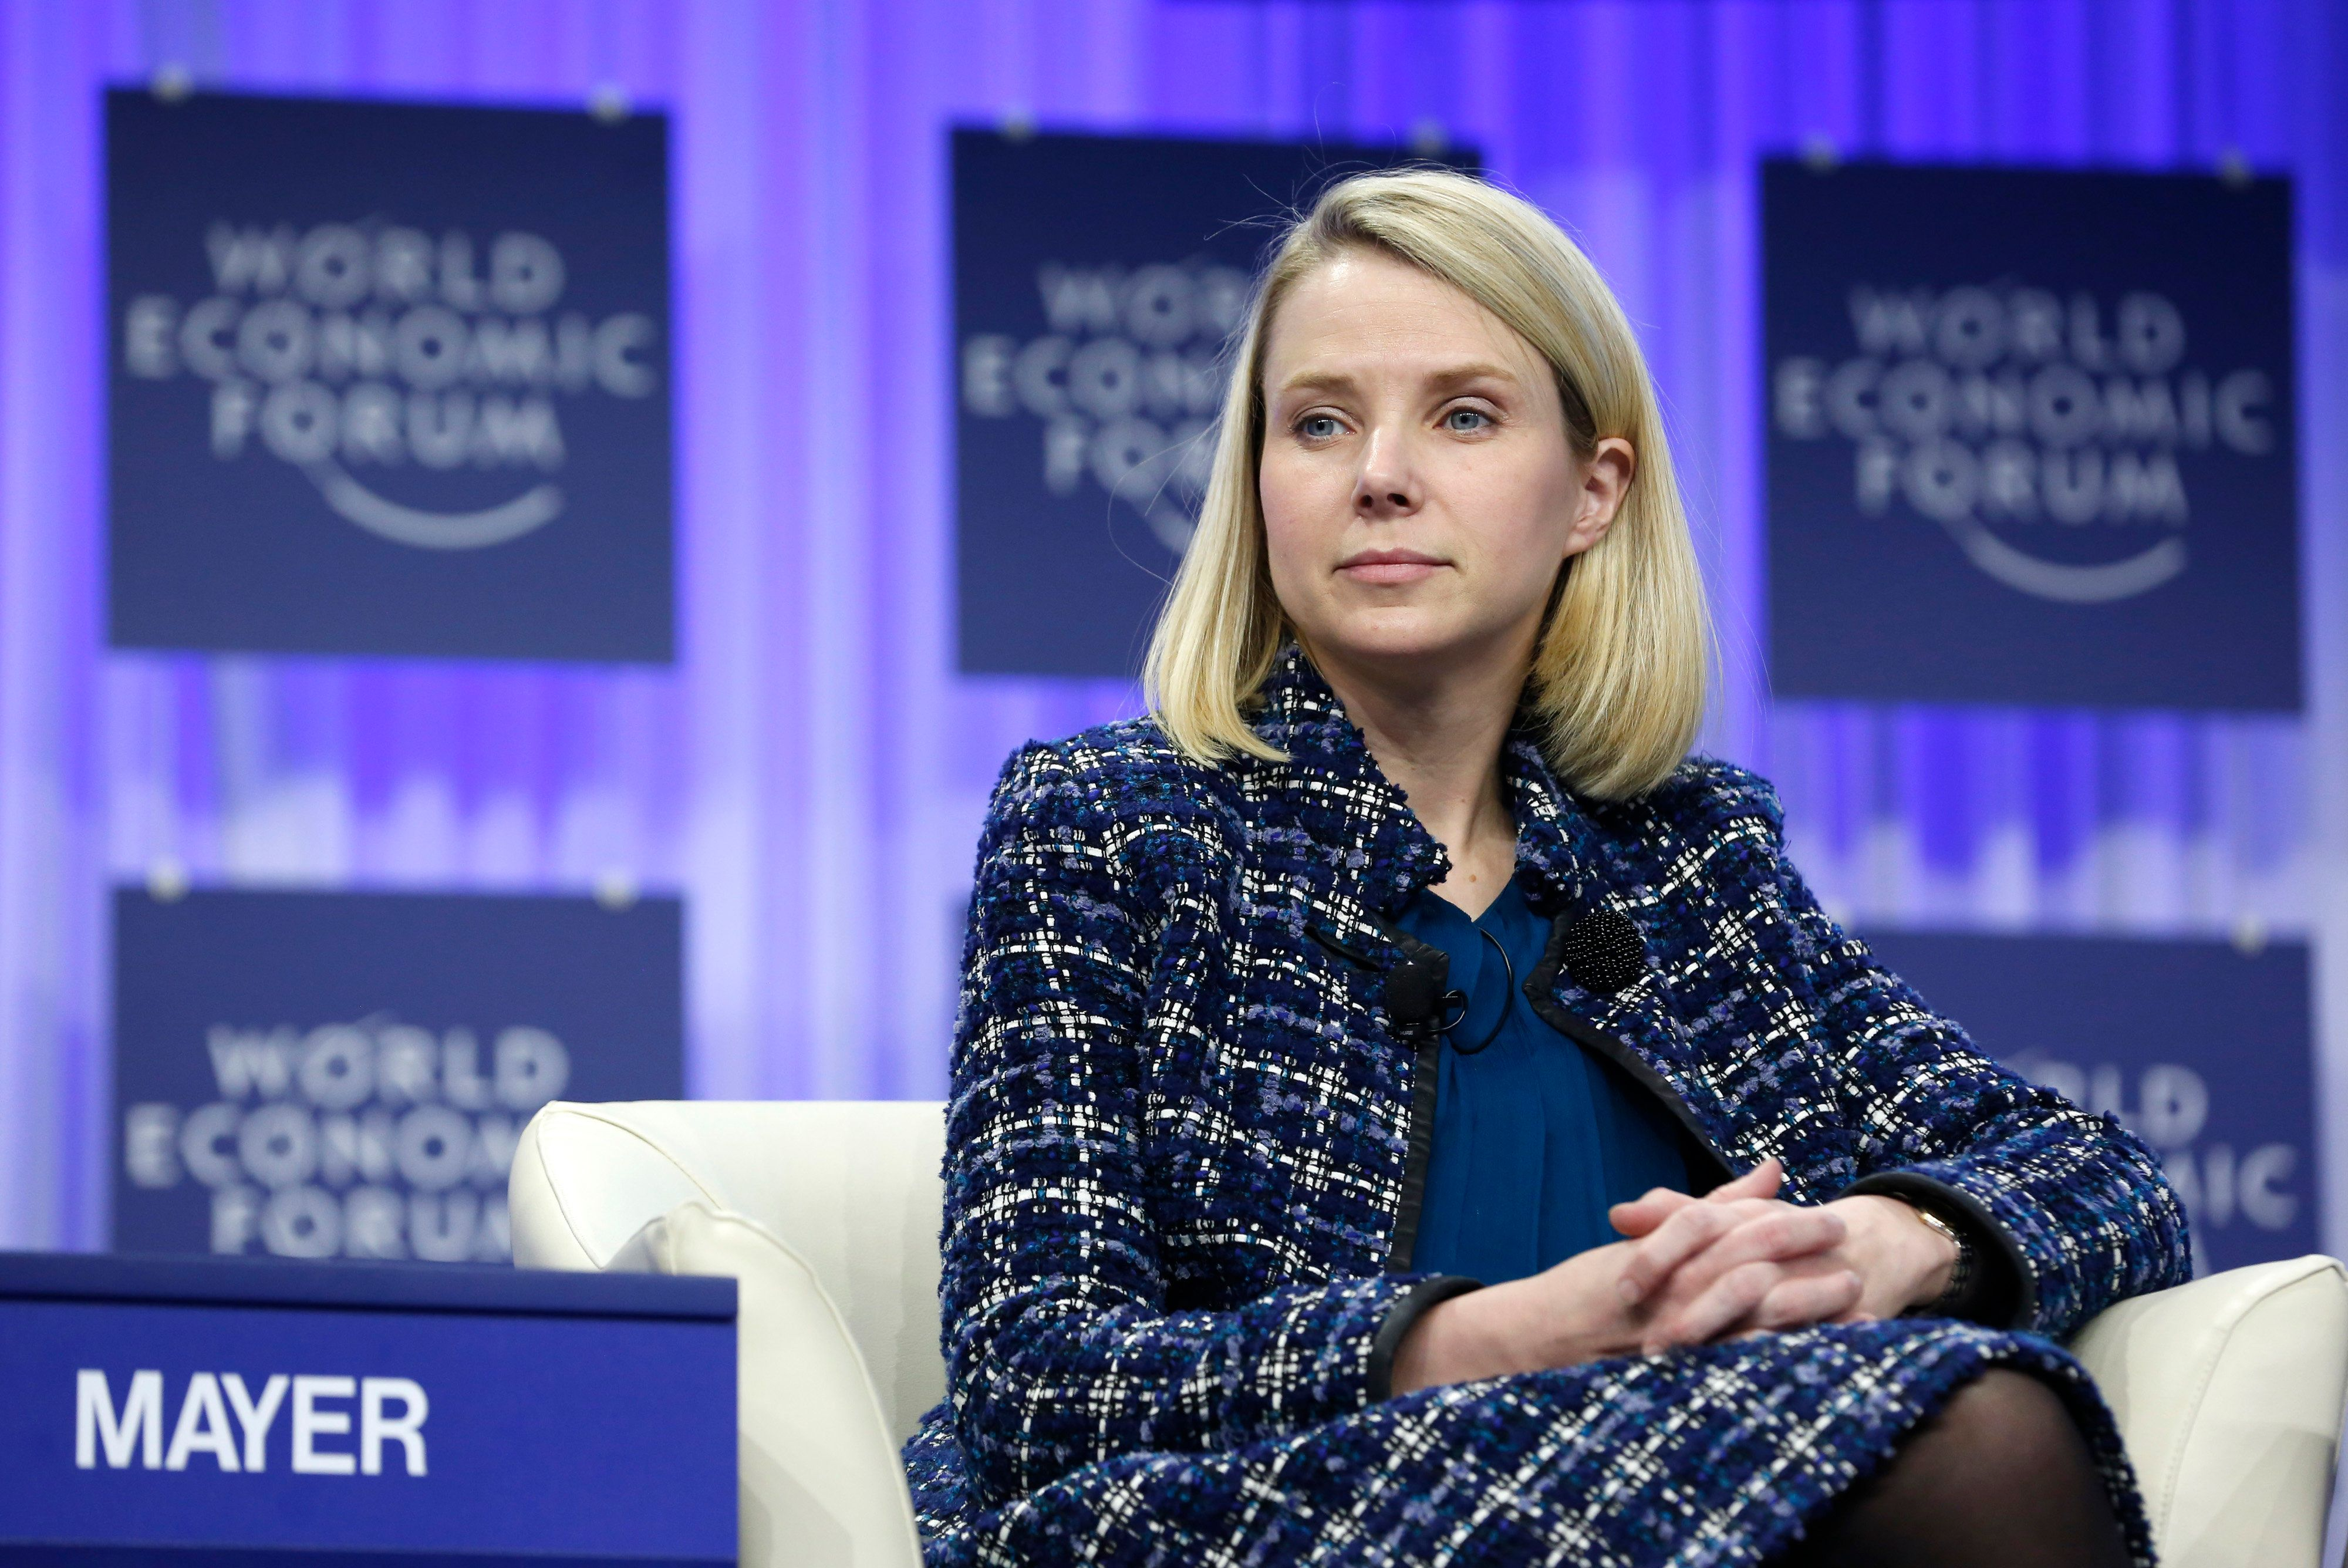 Marissa Mayer, chief executive officer of Yahoo! Inc., pauses during a panel session on day four of the World Economic Forum (WEF) in Davos, Switzerland, on Saturday, Jan. 25, 2014. World leaders, influential executives, bankers and policy makers attend the 44th annual meeting of the World Economic Forum in Davos, the five day event runs from Jan. 22-25. Photographer: Jason Alden/Bloomberg via Getty Images